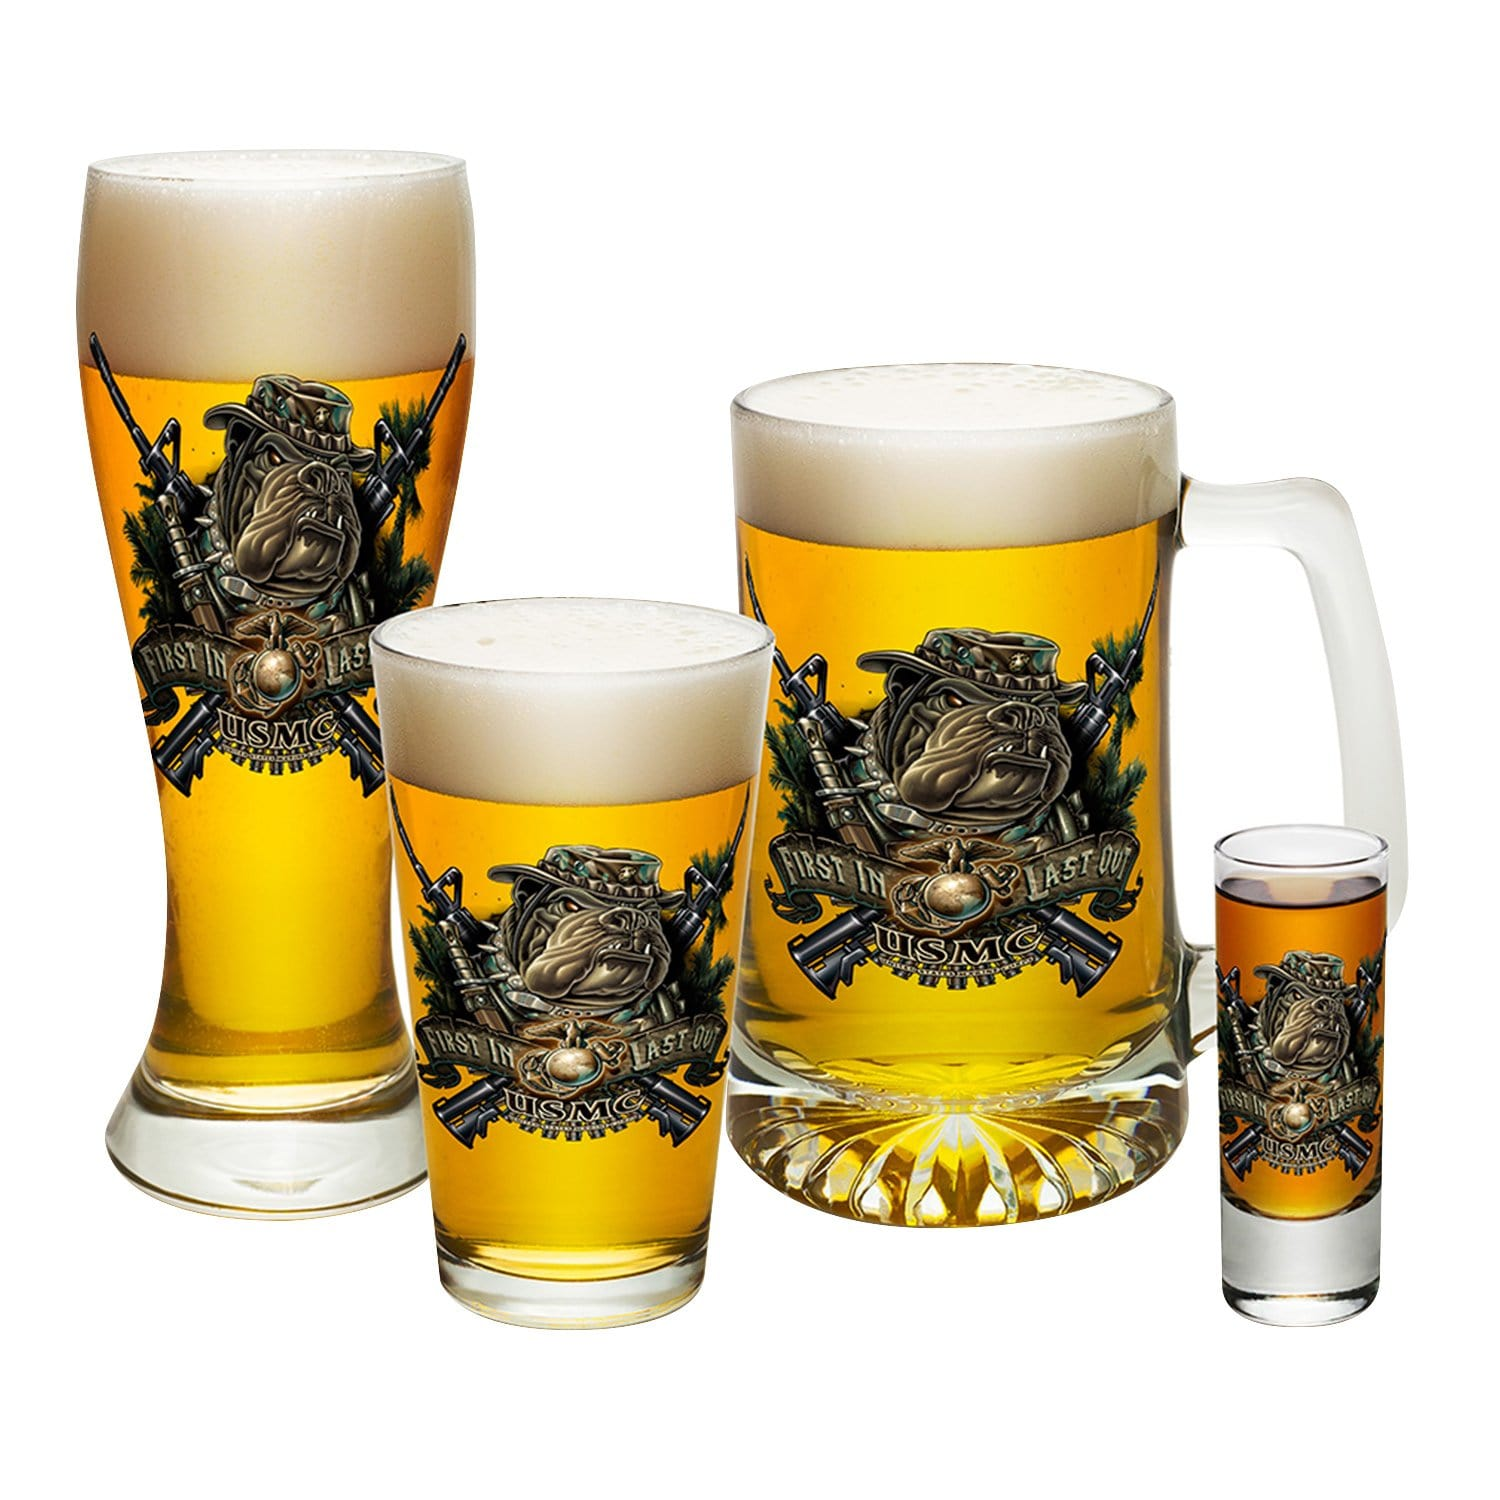 Marine Devil Dog First In Last Out 4 PC. Glass Set